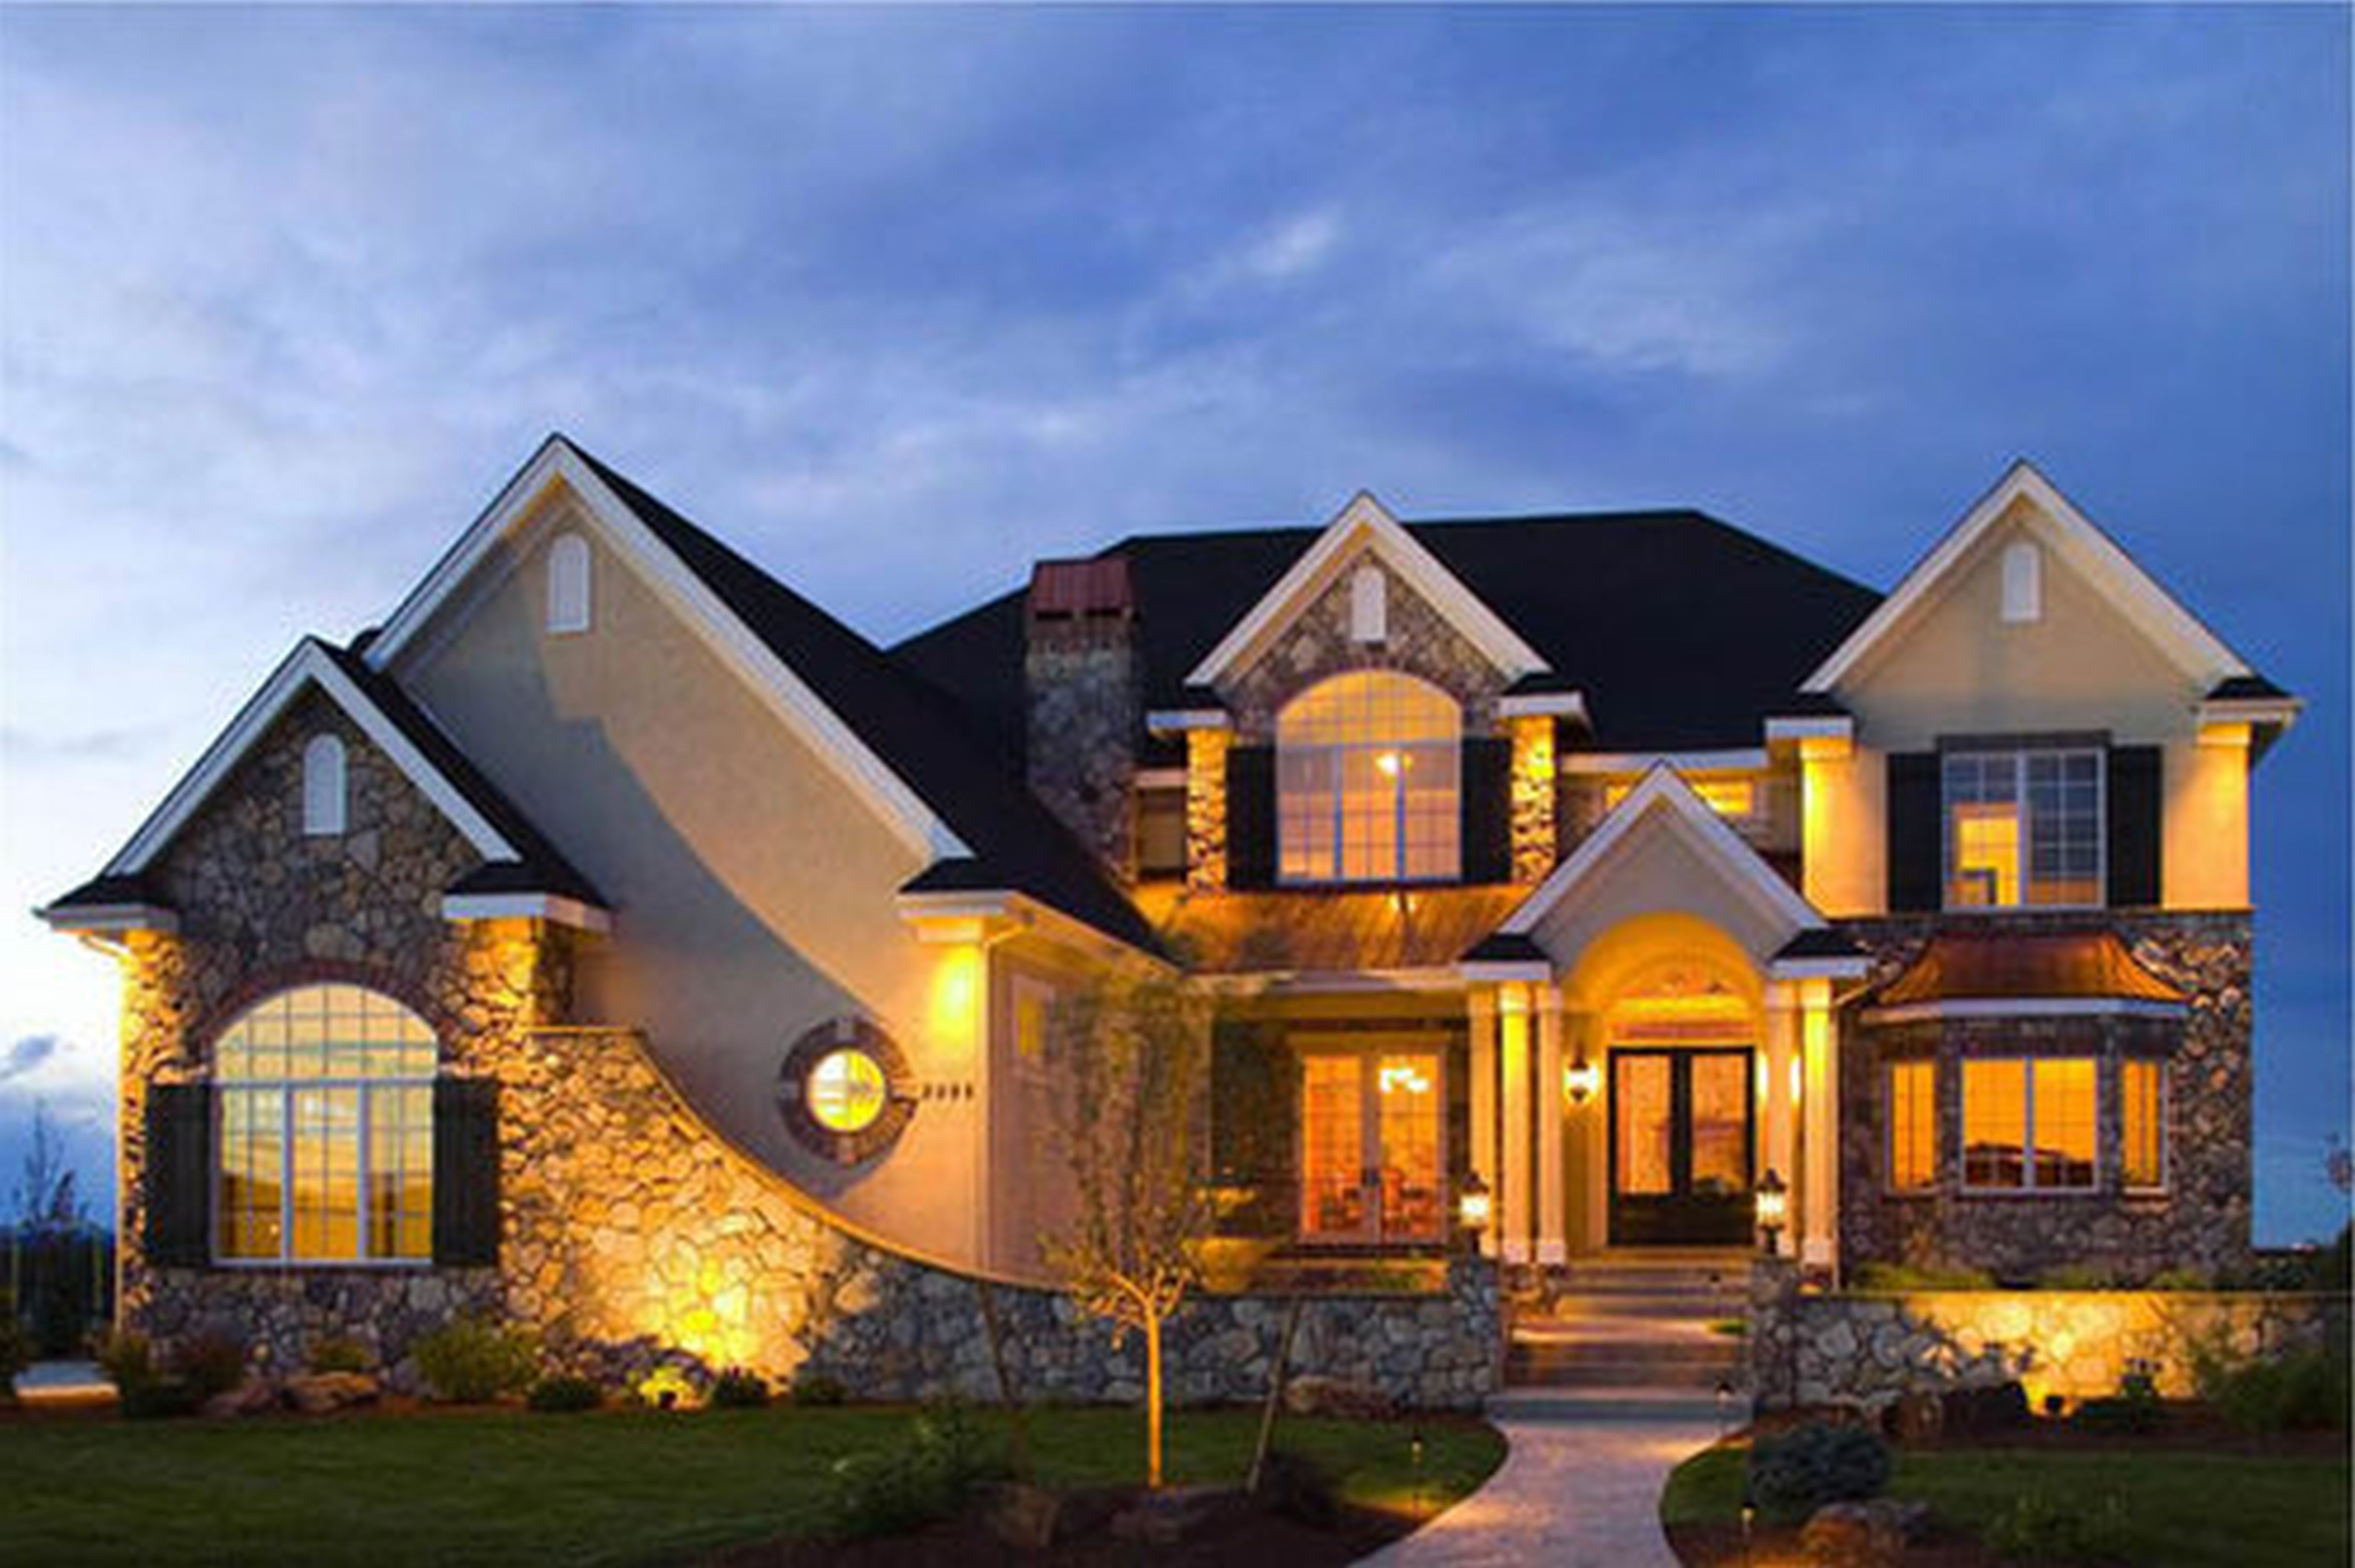 House design valuation - Virginia Real Estate Search All Homes In Virginia Popular Neighborhoods Popular Neighborhoods House Valuation